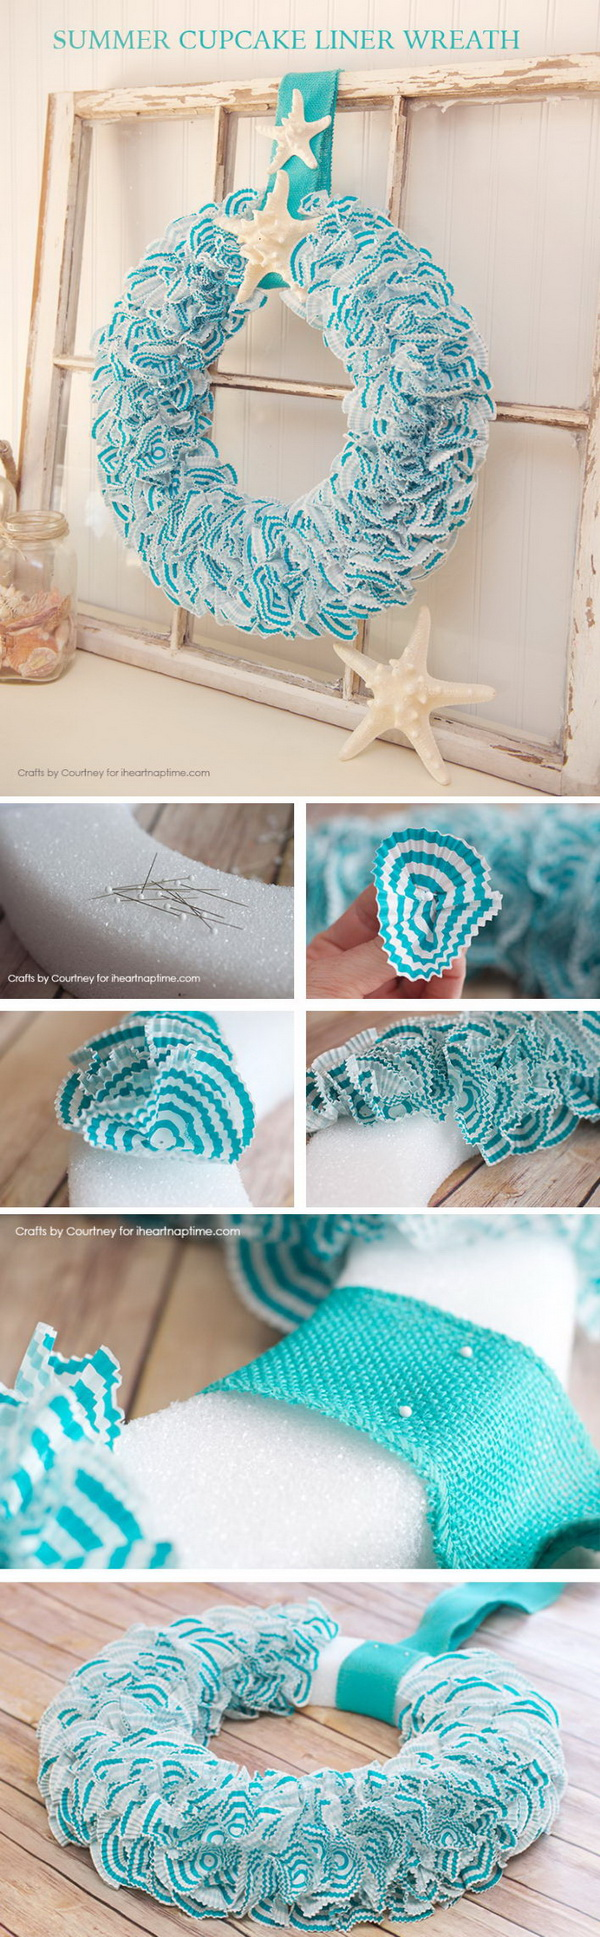 DIY Nautical Wreath With Cupcake Liners And Seashells.